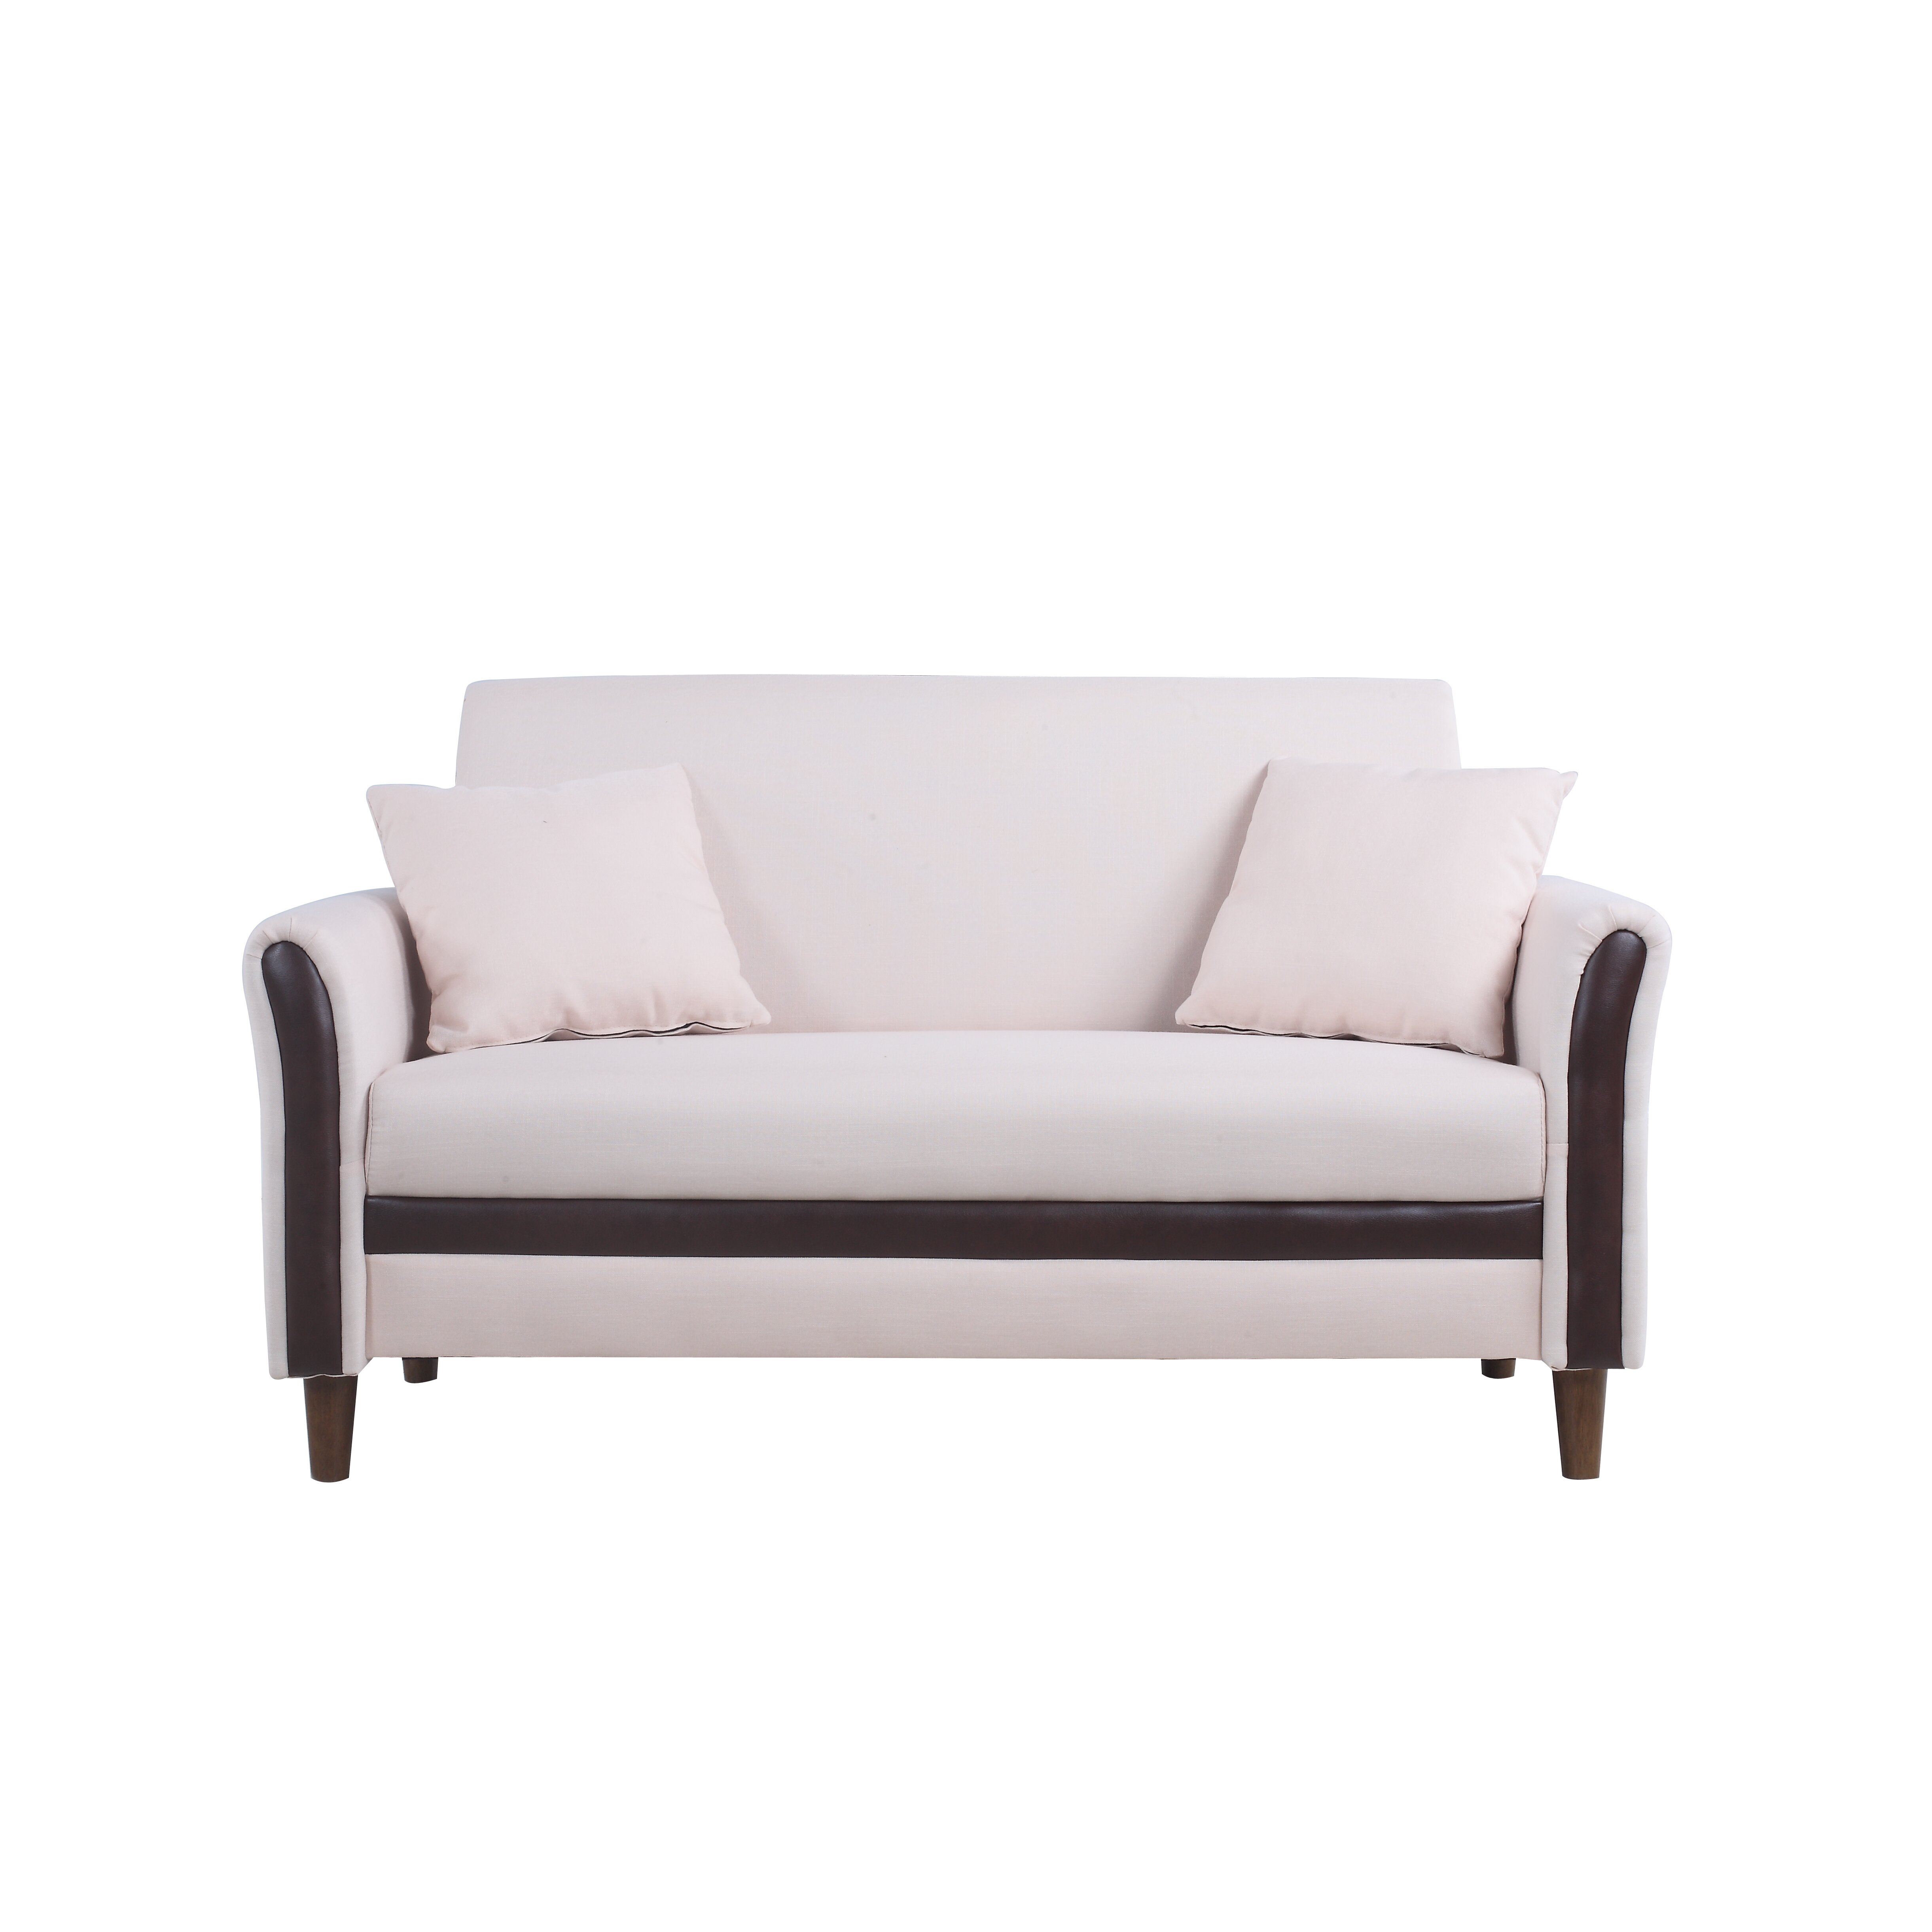 Madison Home USA Modern Loveseat. Madison Home USA Modern Loveseat   Reviews   Wayfair